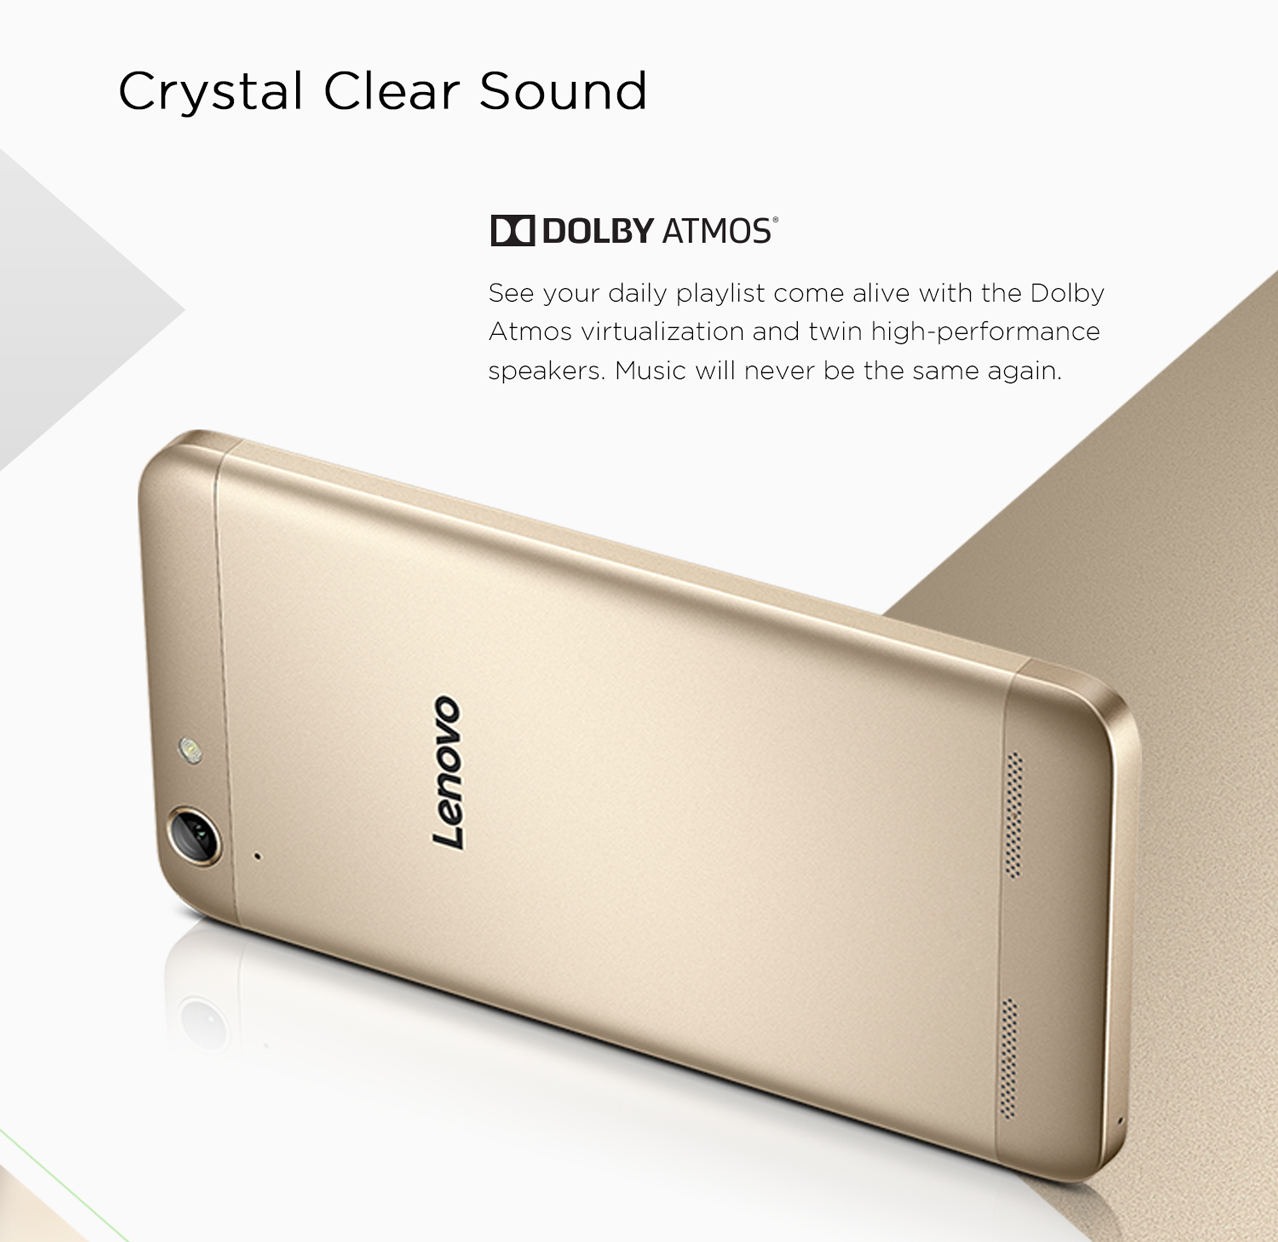 Crystal Clear Sound